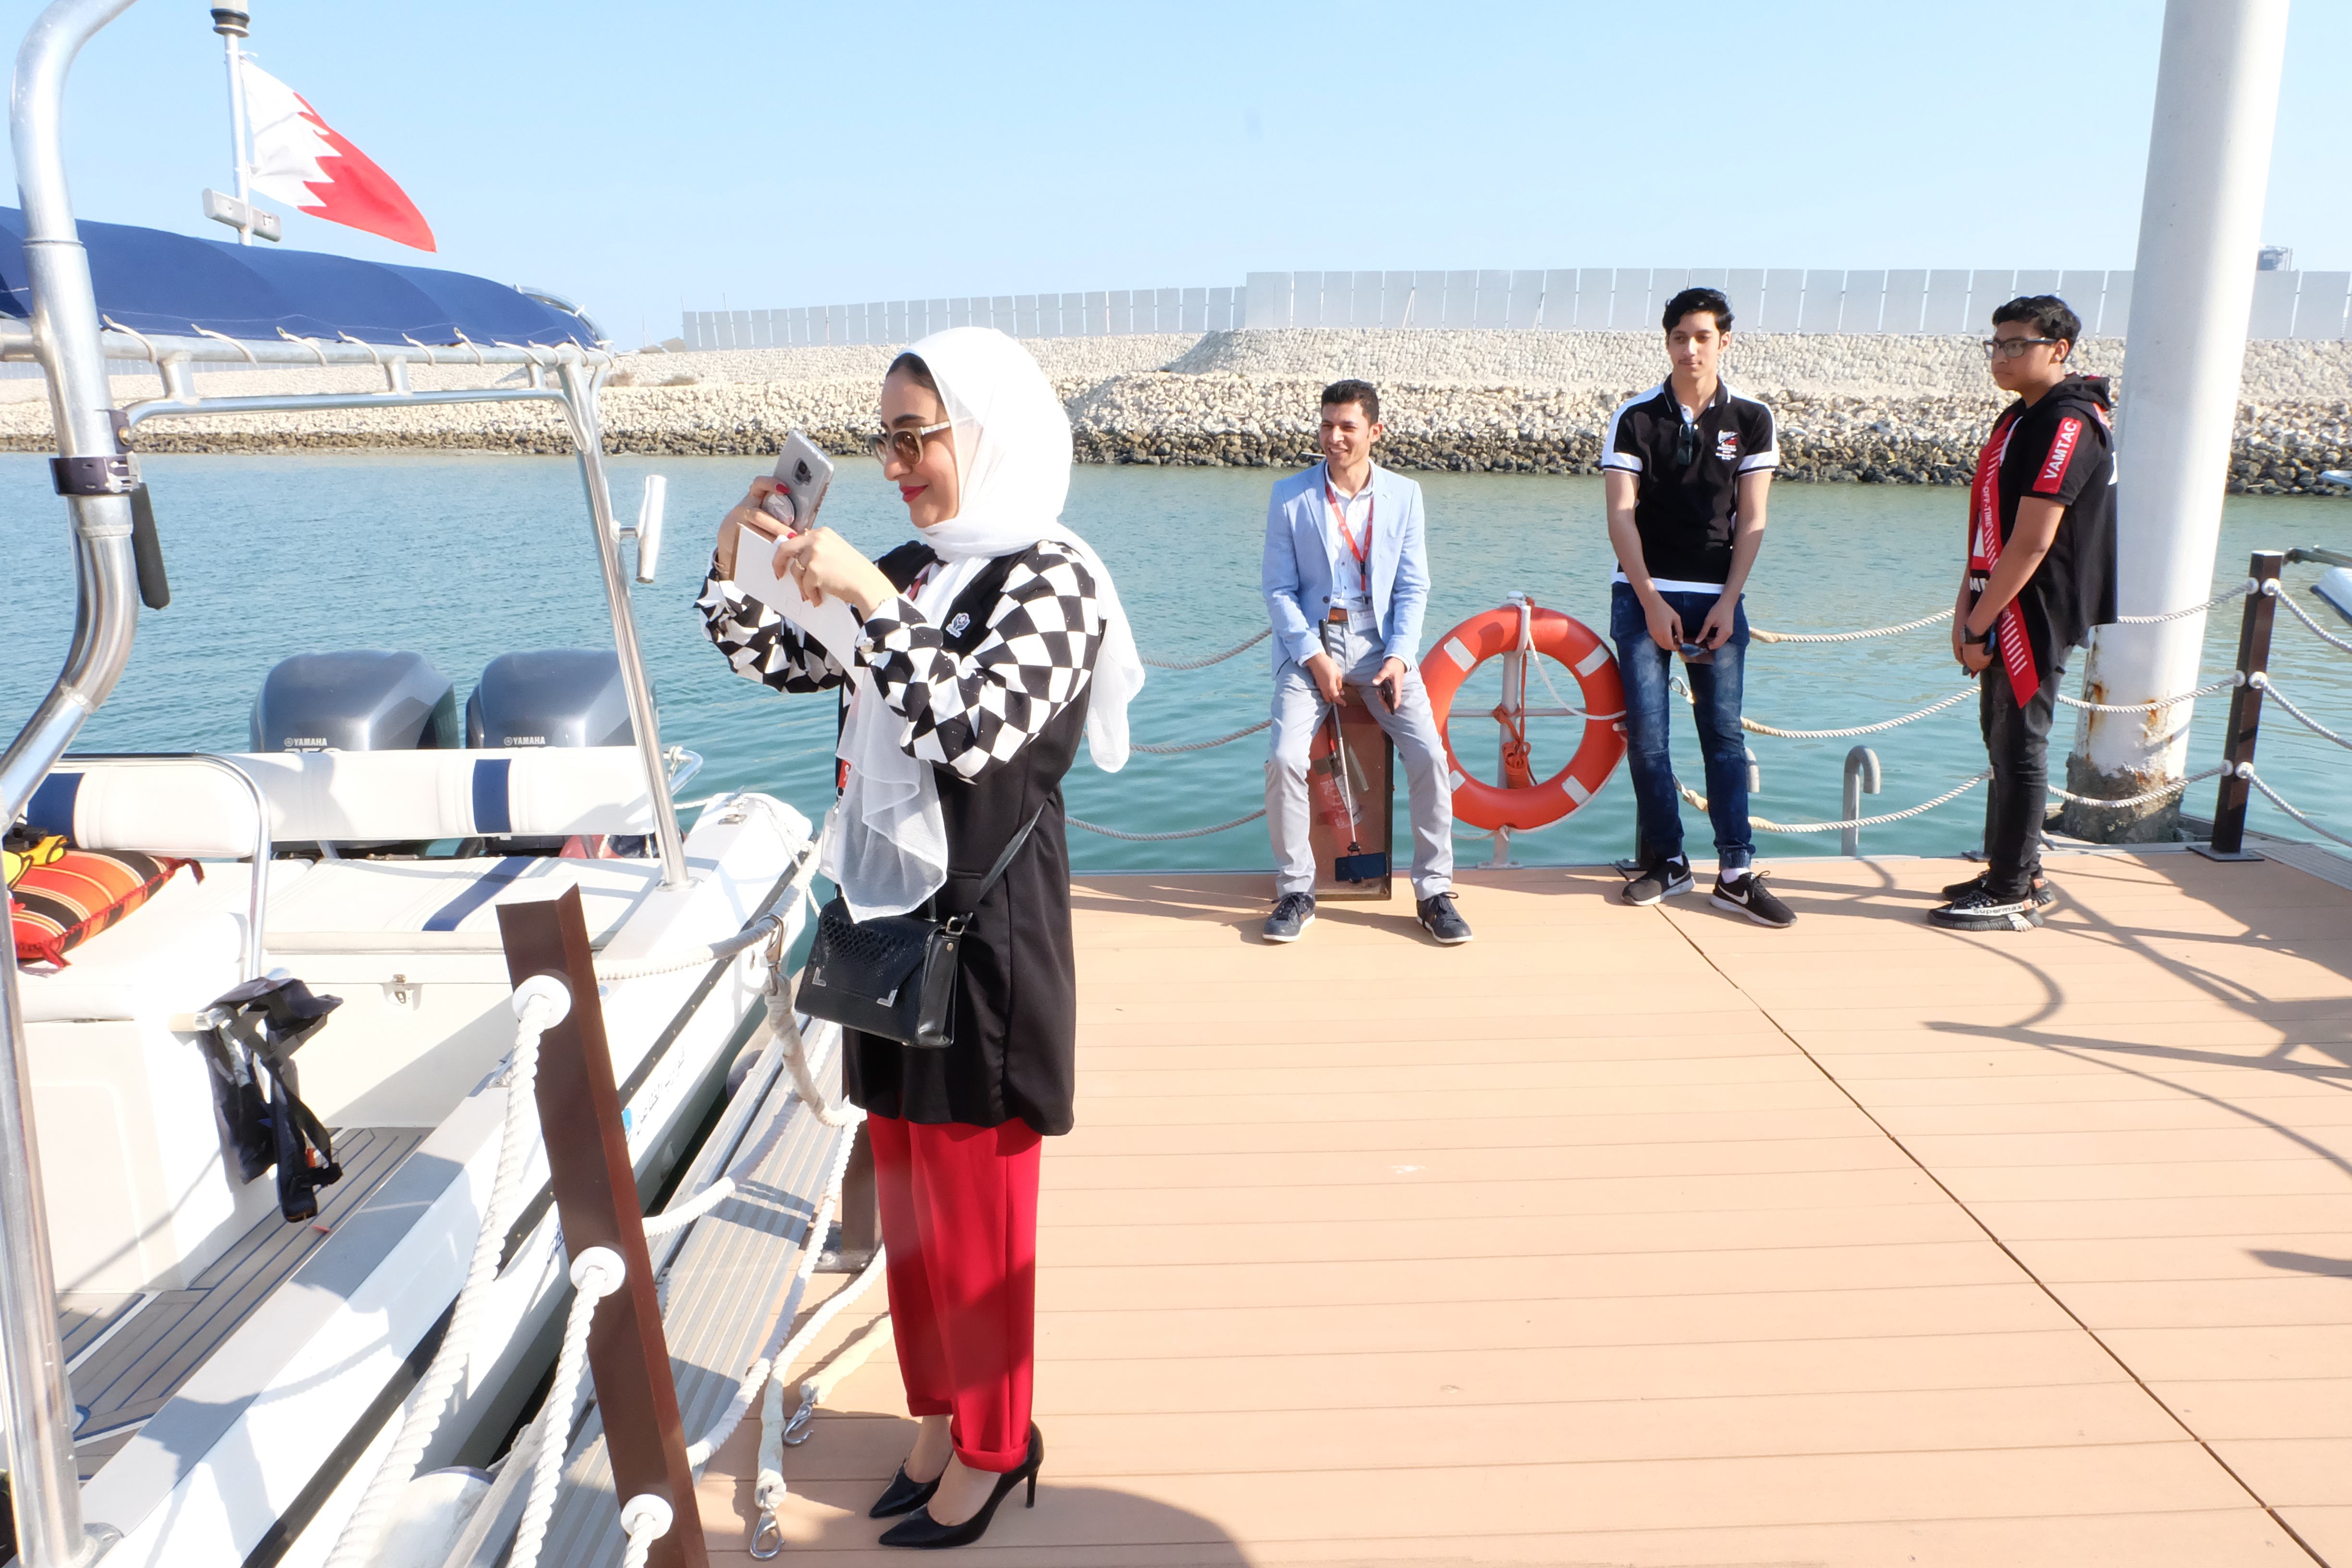 Keepers Tour Boat Ride to Abu Maher Fort